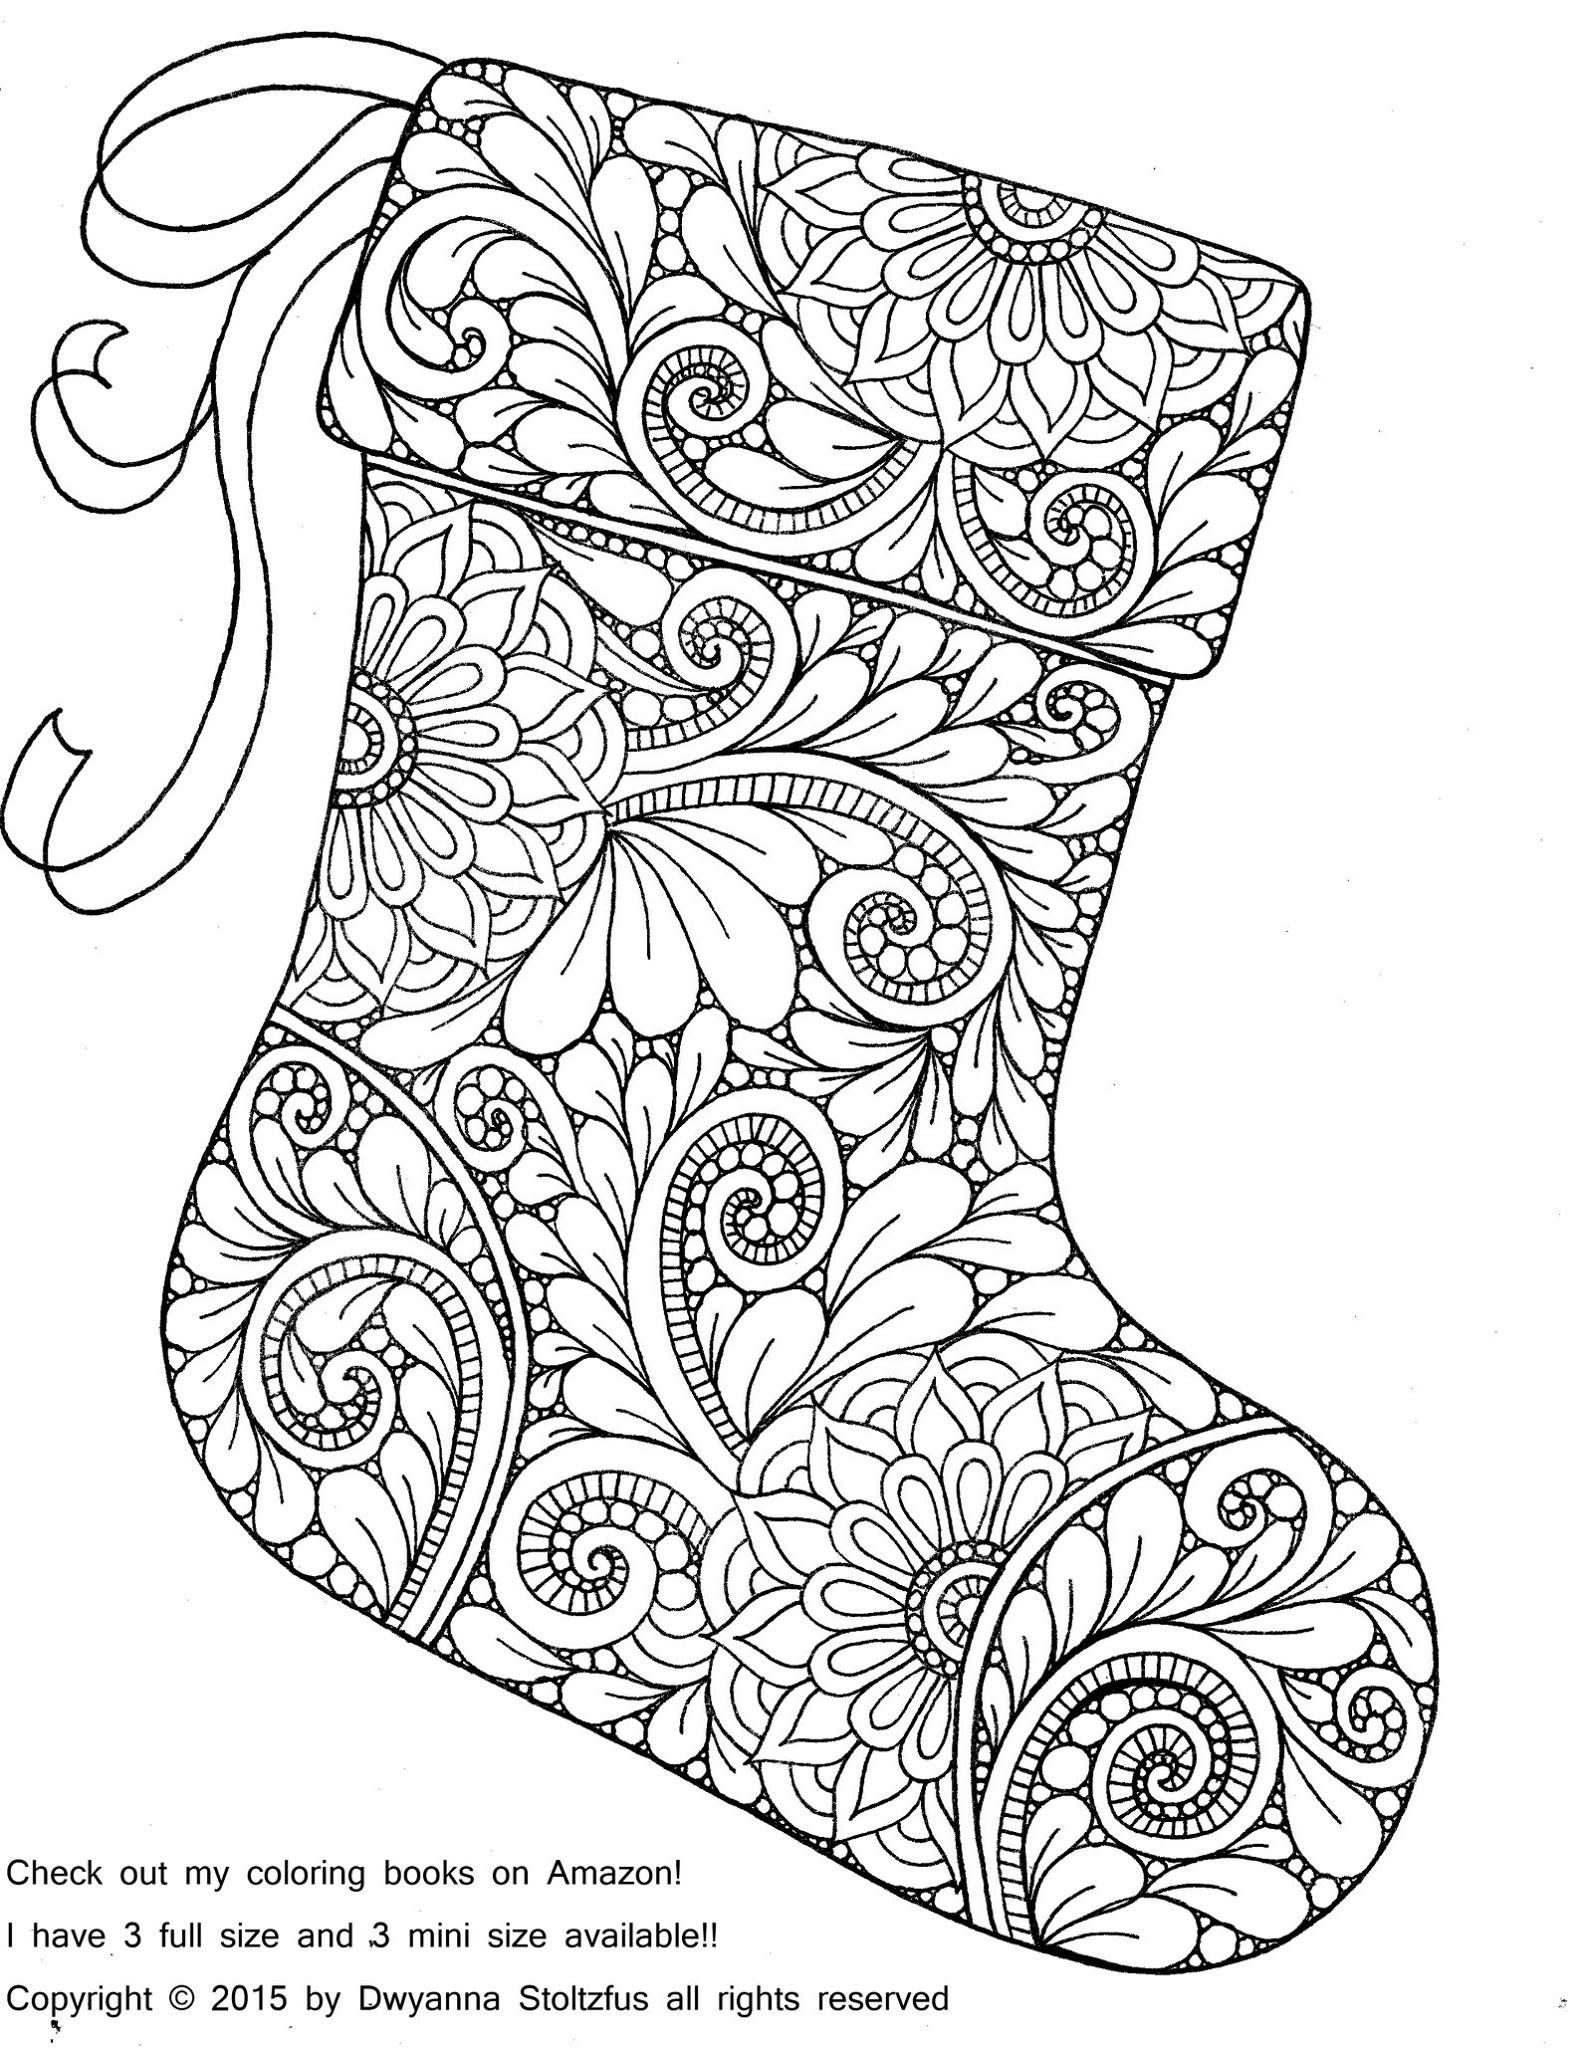 Christmas stocking coloring page | Coloring Pages | Pinterest ...